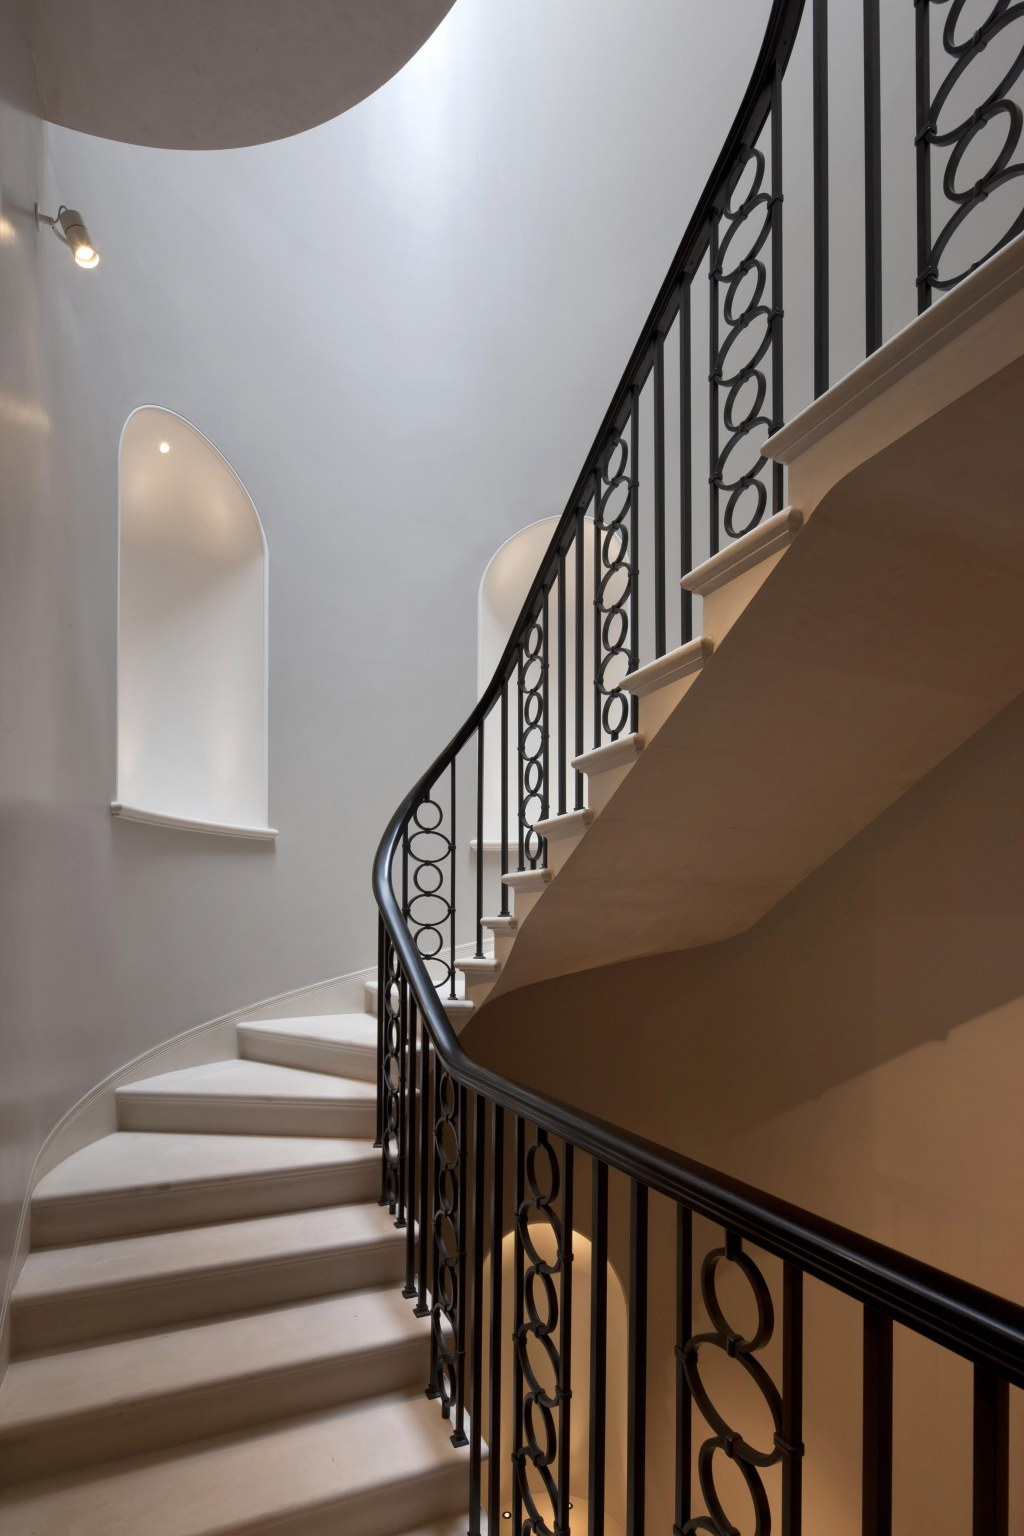 New gallery for Richard Green, Bond Street / Stairs